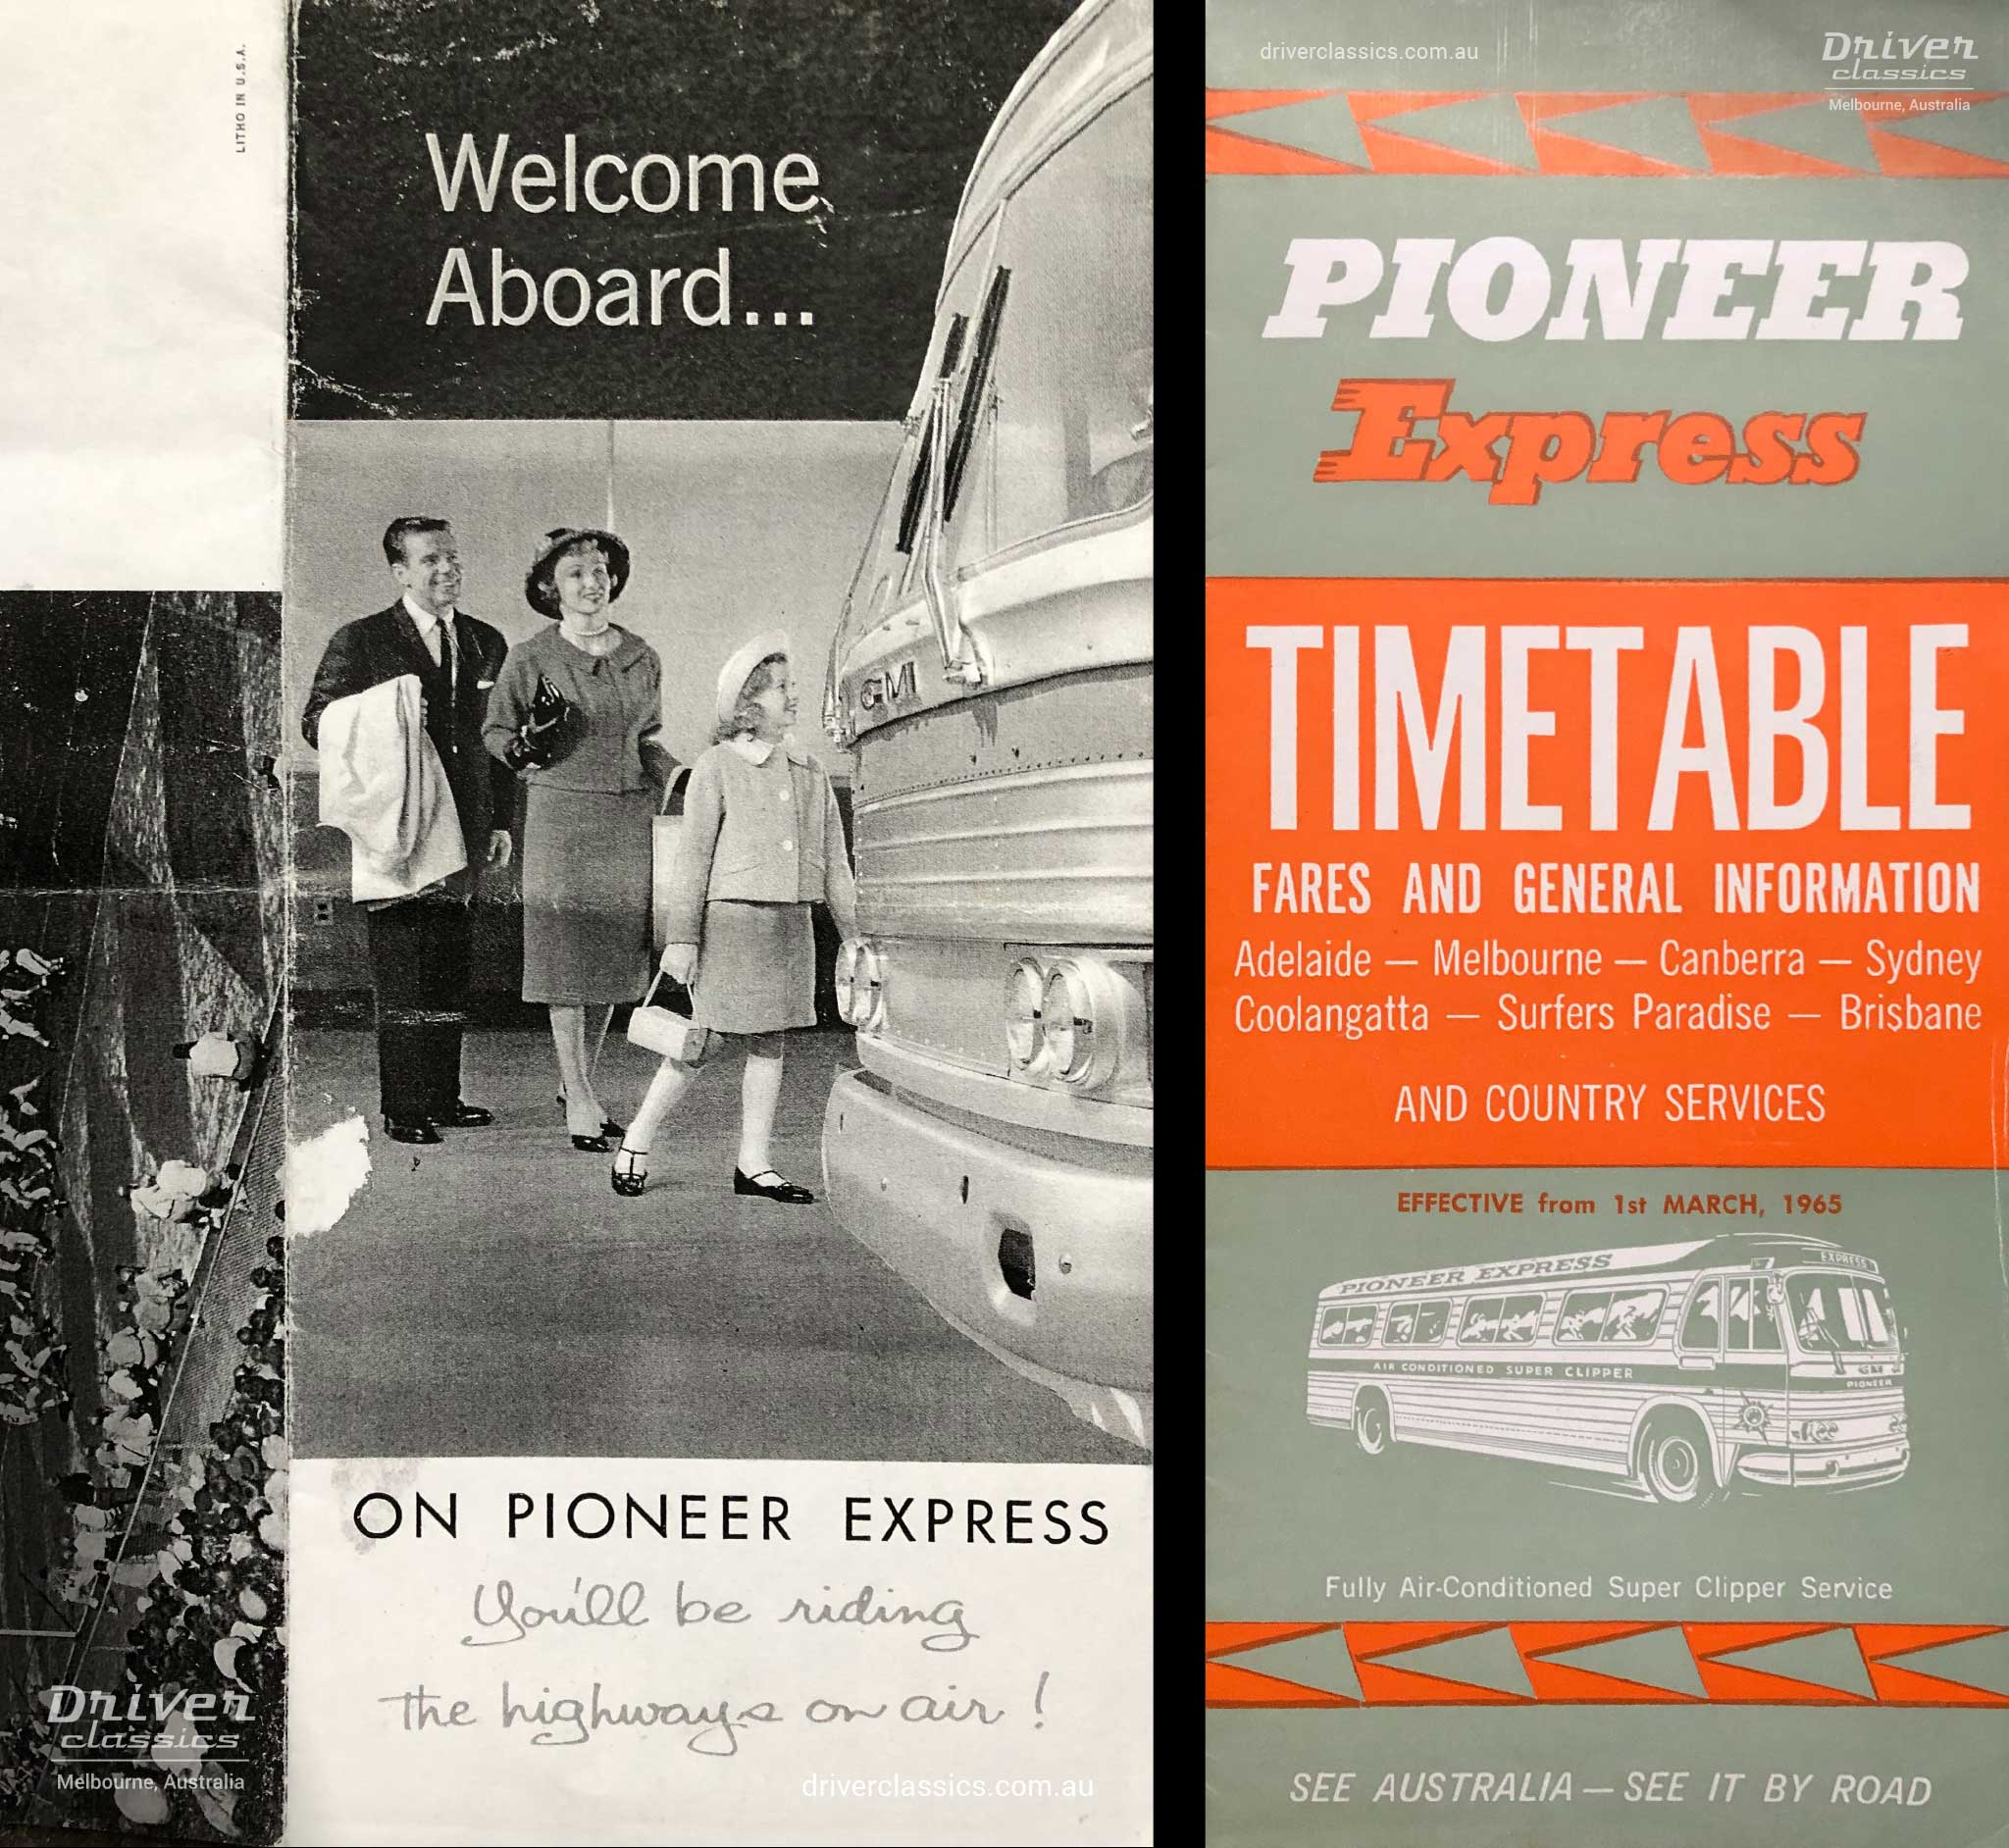 Pioneer advertising, circa early 1960s and Pioneer Express timetable from 1965. Both featuring GM PD-4106 bus.